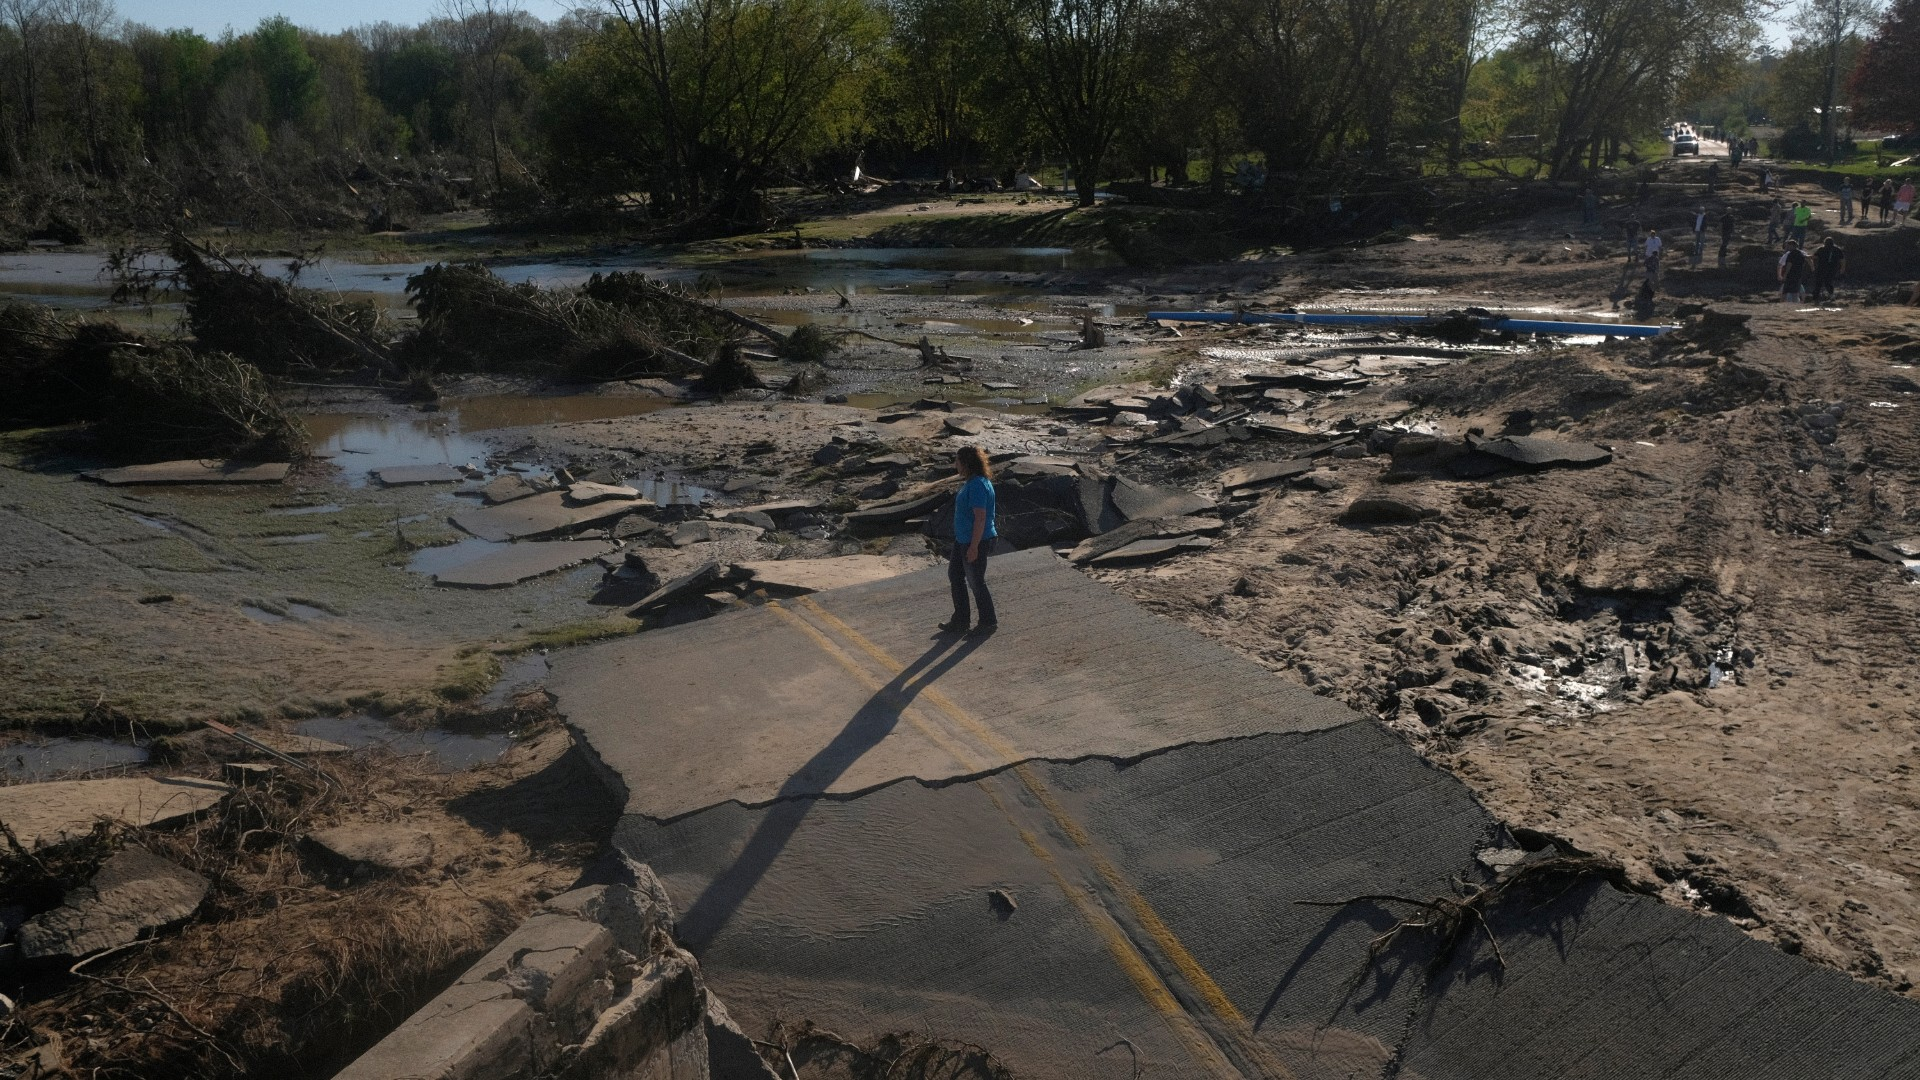 Residents explore what remains of the West Curtis Road bridge which was swept away following extreme flooding throughout central Michigan on May 20, 2020 in Edenville, Michigan (Matthew Hatcher/Getty Images)